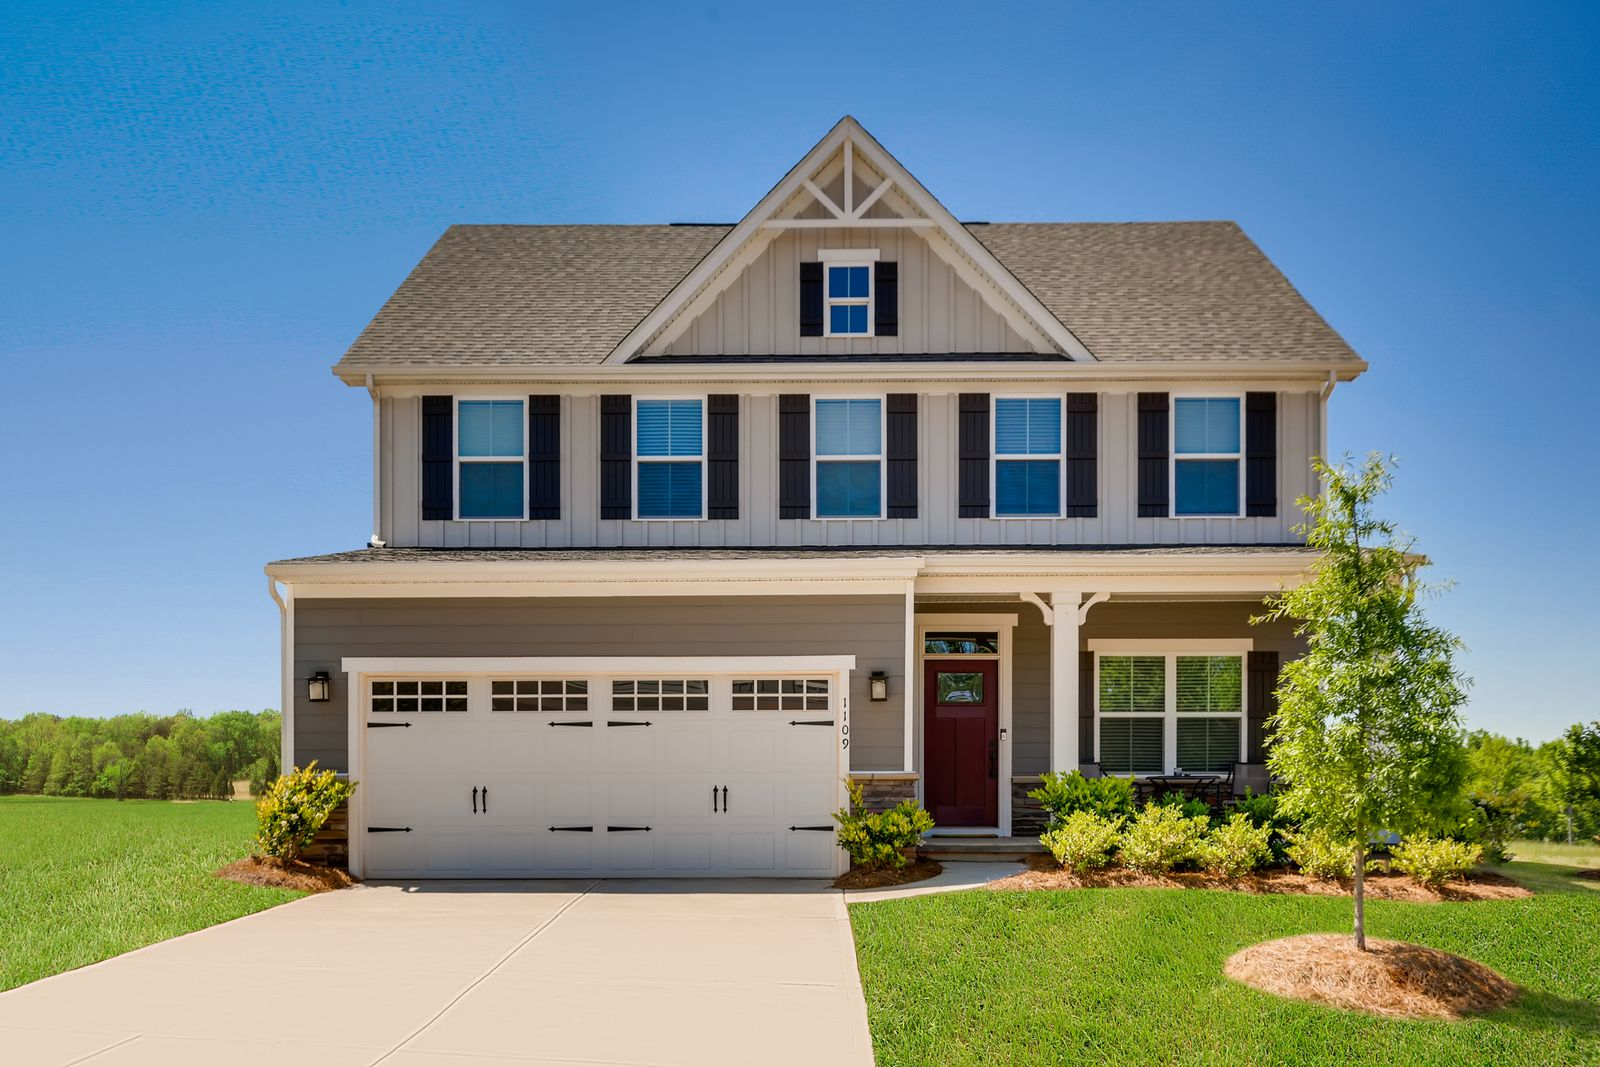 Welcome Home to Heritage Hill:Scenic, wooded views backing to 100-acre preserve with beautiful homesites! Build new convenient to downtown, I-74 & 267 from the low $300s.Click here to schedule your appointment!